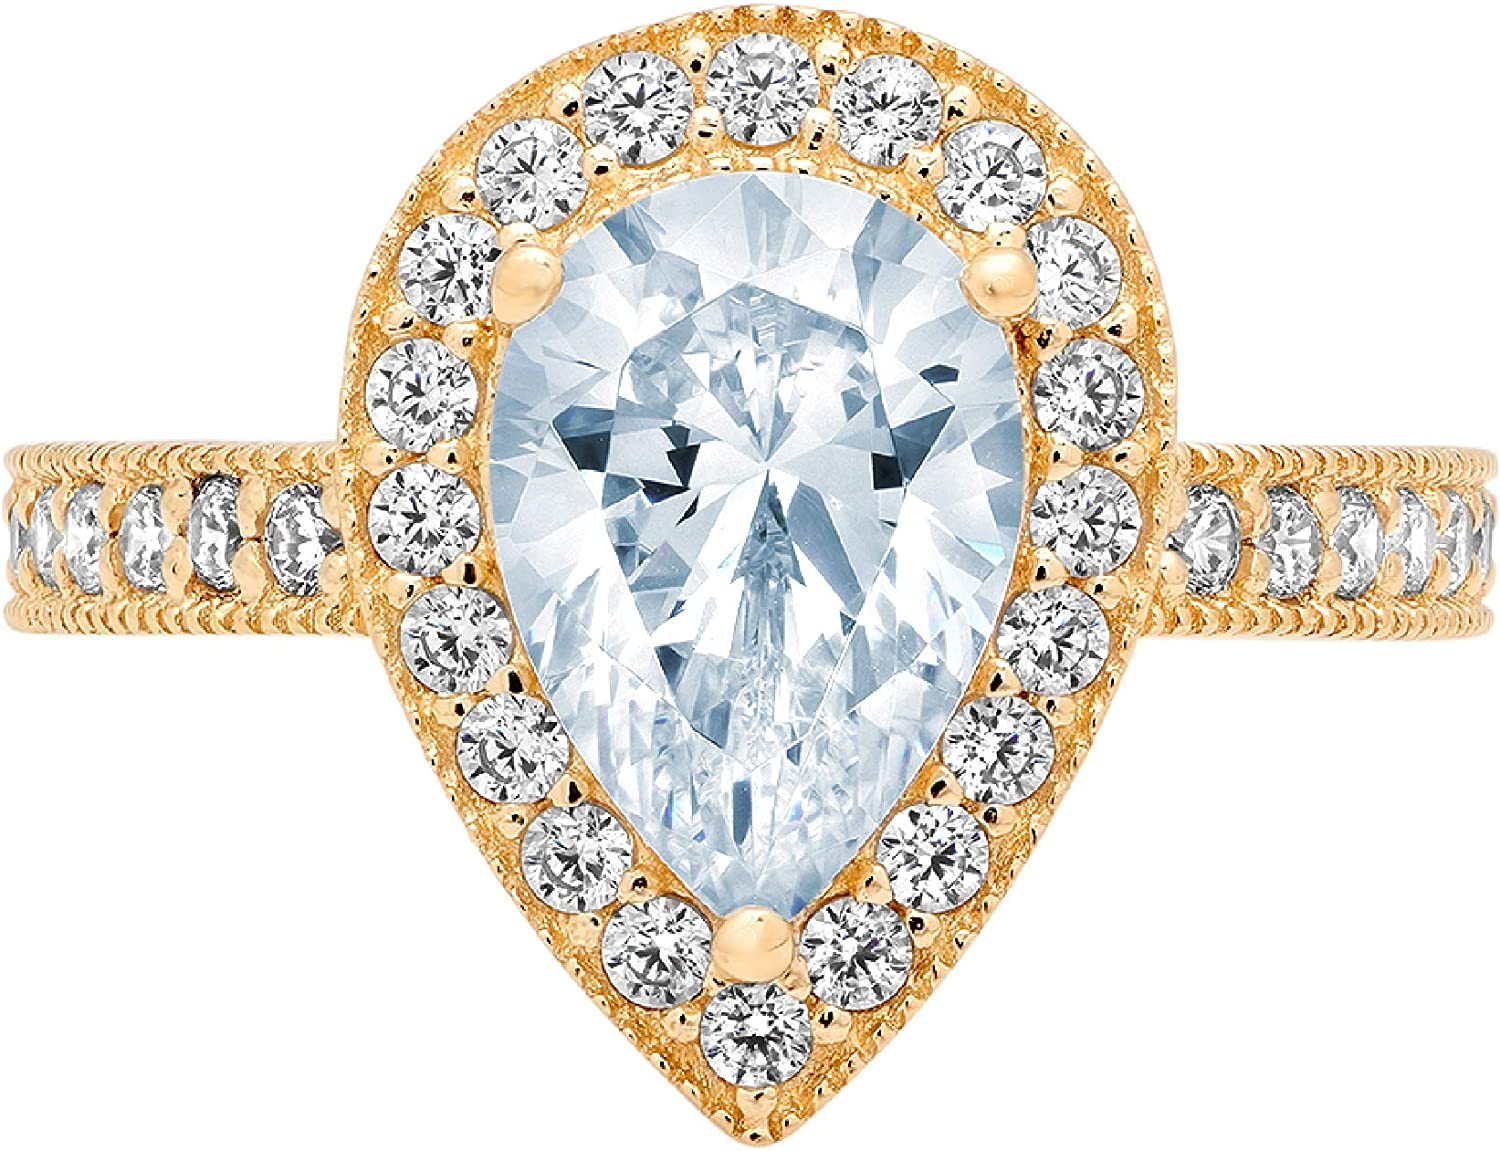 2.01ct Brilliant Pear Cut Solitaire with Accent Halo Natural Topaz Gem Stone Ideal VVS1 Engagement Promise Anniversary Bridal Wedding Ring 14k Yellow Gold